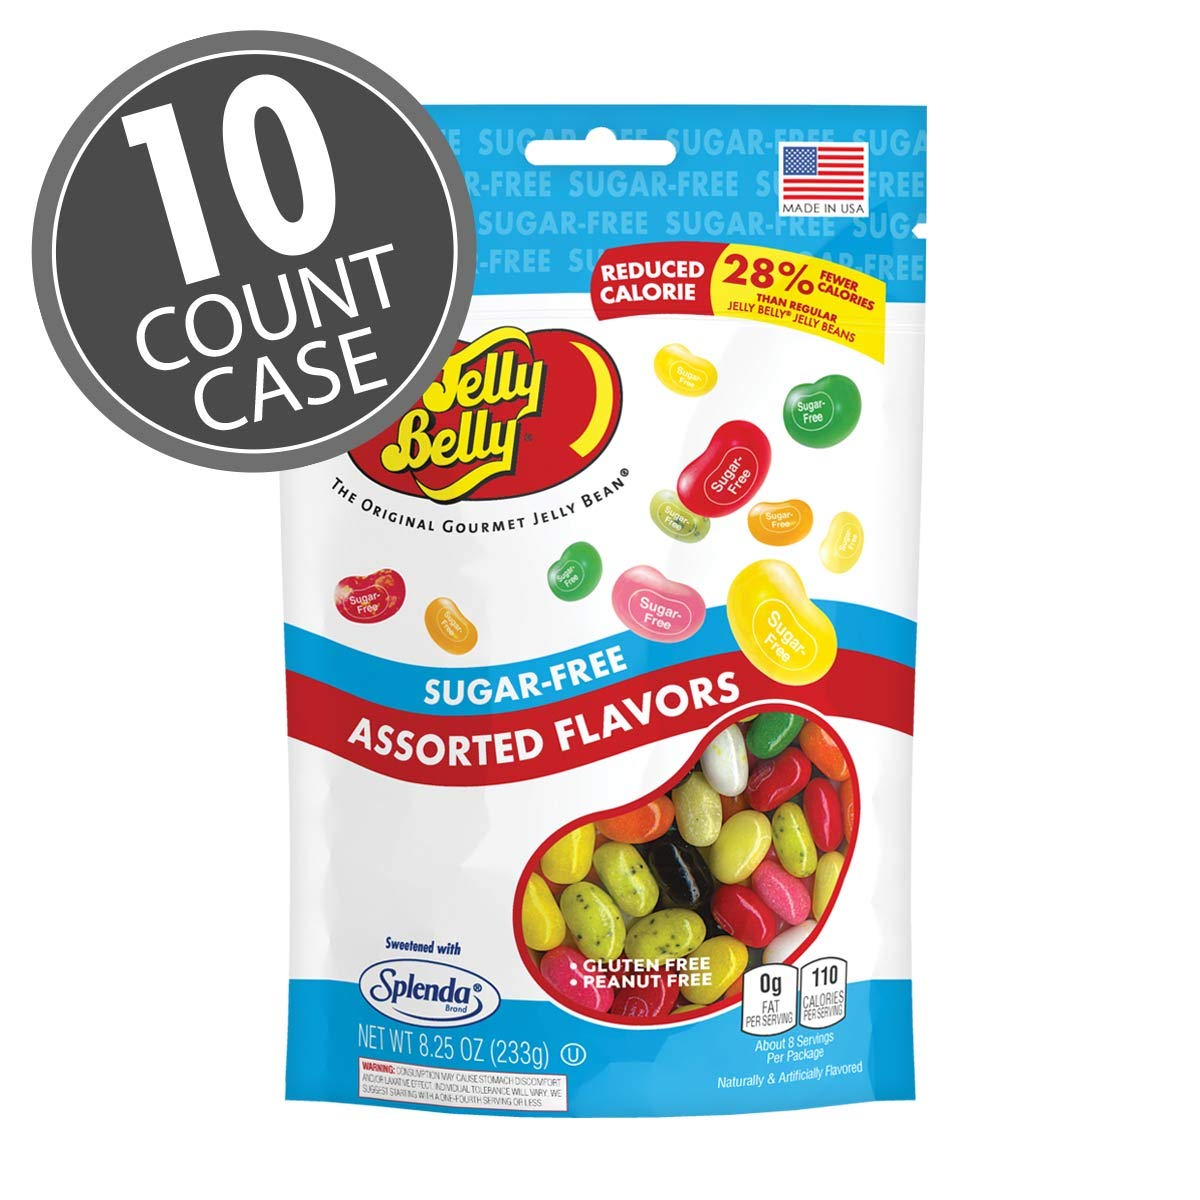 Jelly Belly Sugar Free - 8.25 oz, 10 Count Case - Official, Genuine, Straight from the Source by Jelly Belly